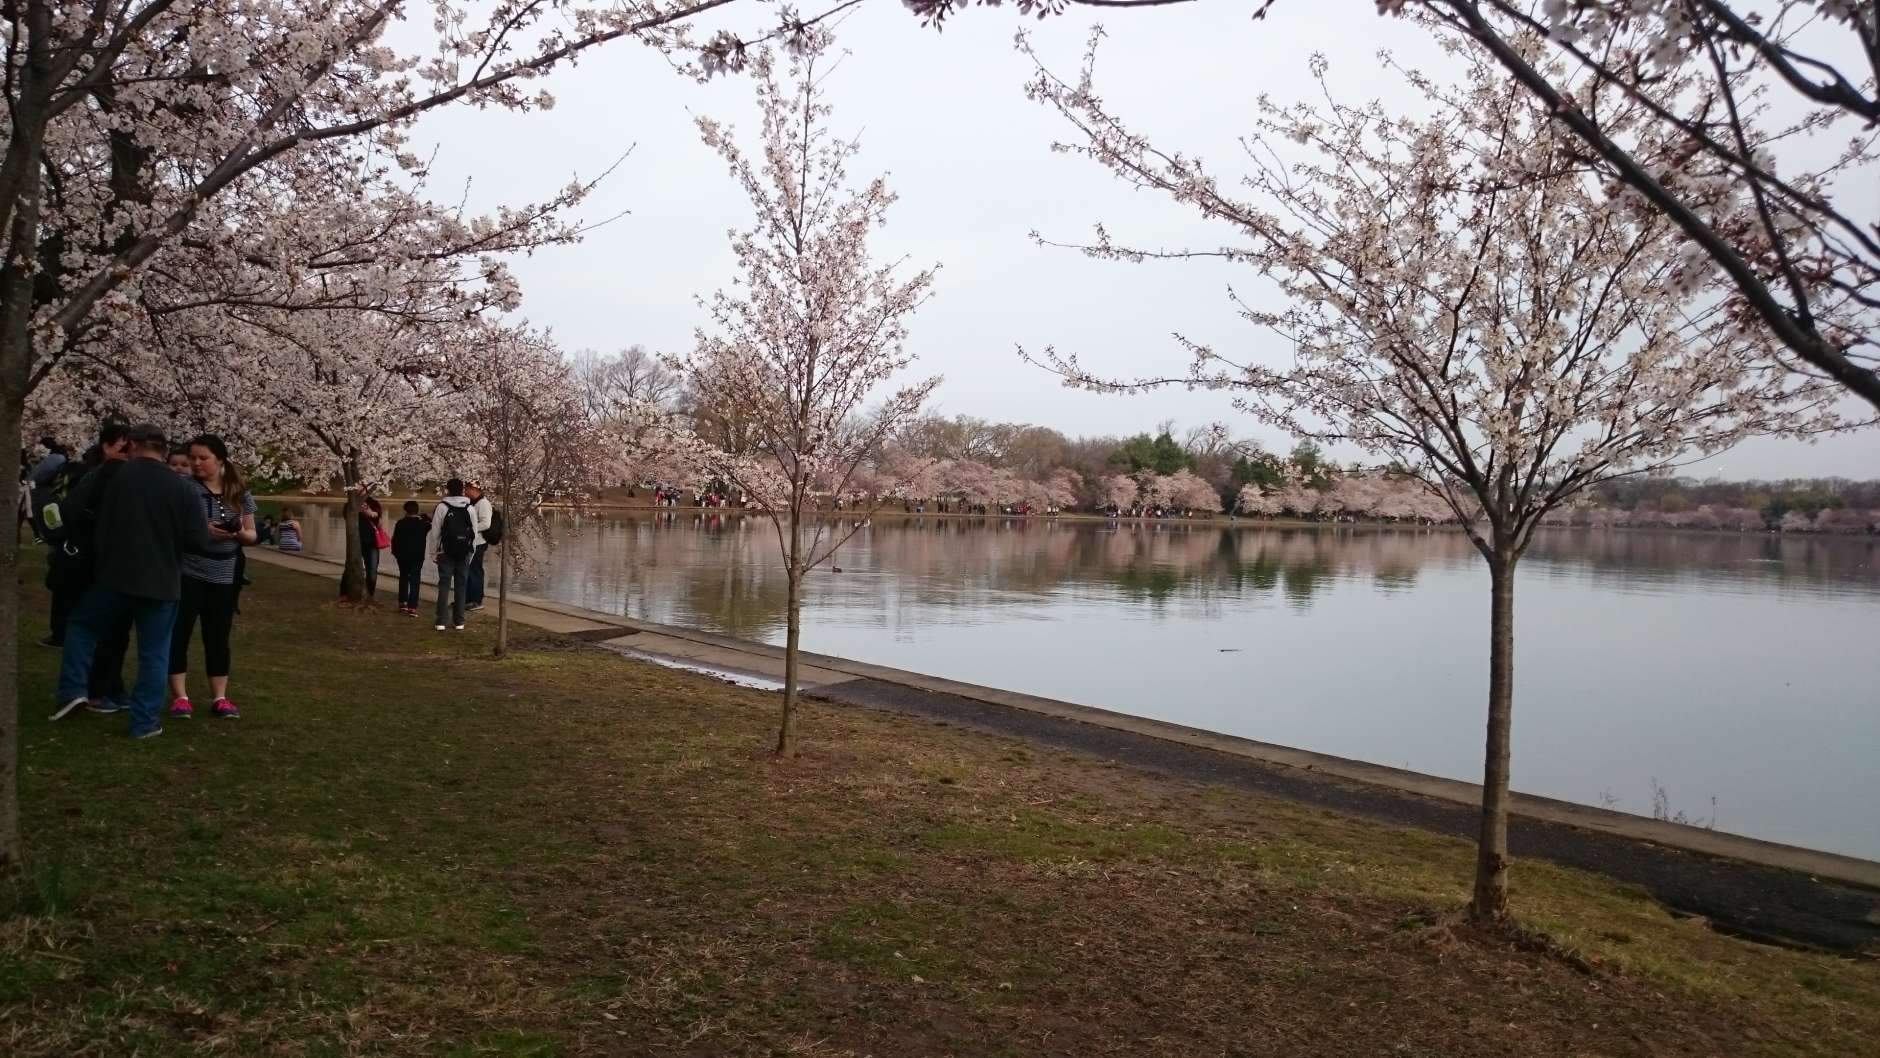 Visitors stroll among the cherry blossoms, which are now at peak bloom. (WTOP/Dennis Foley)